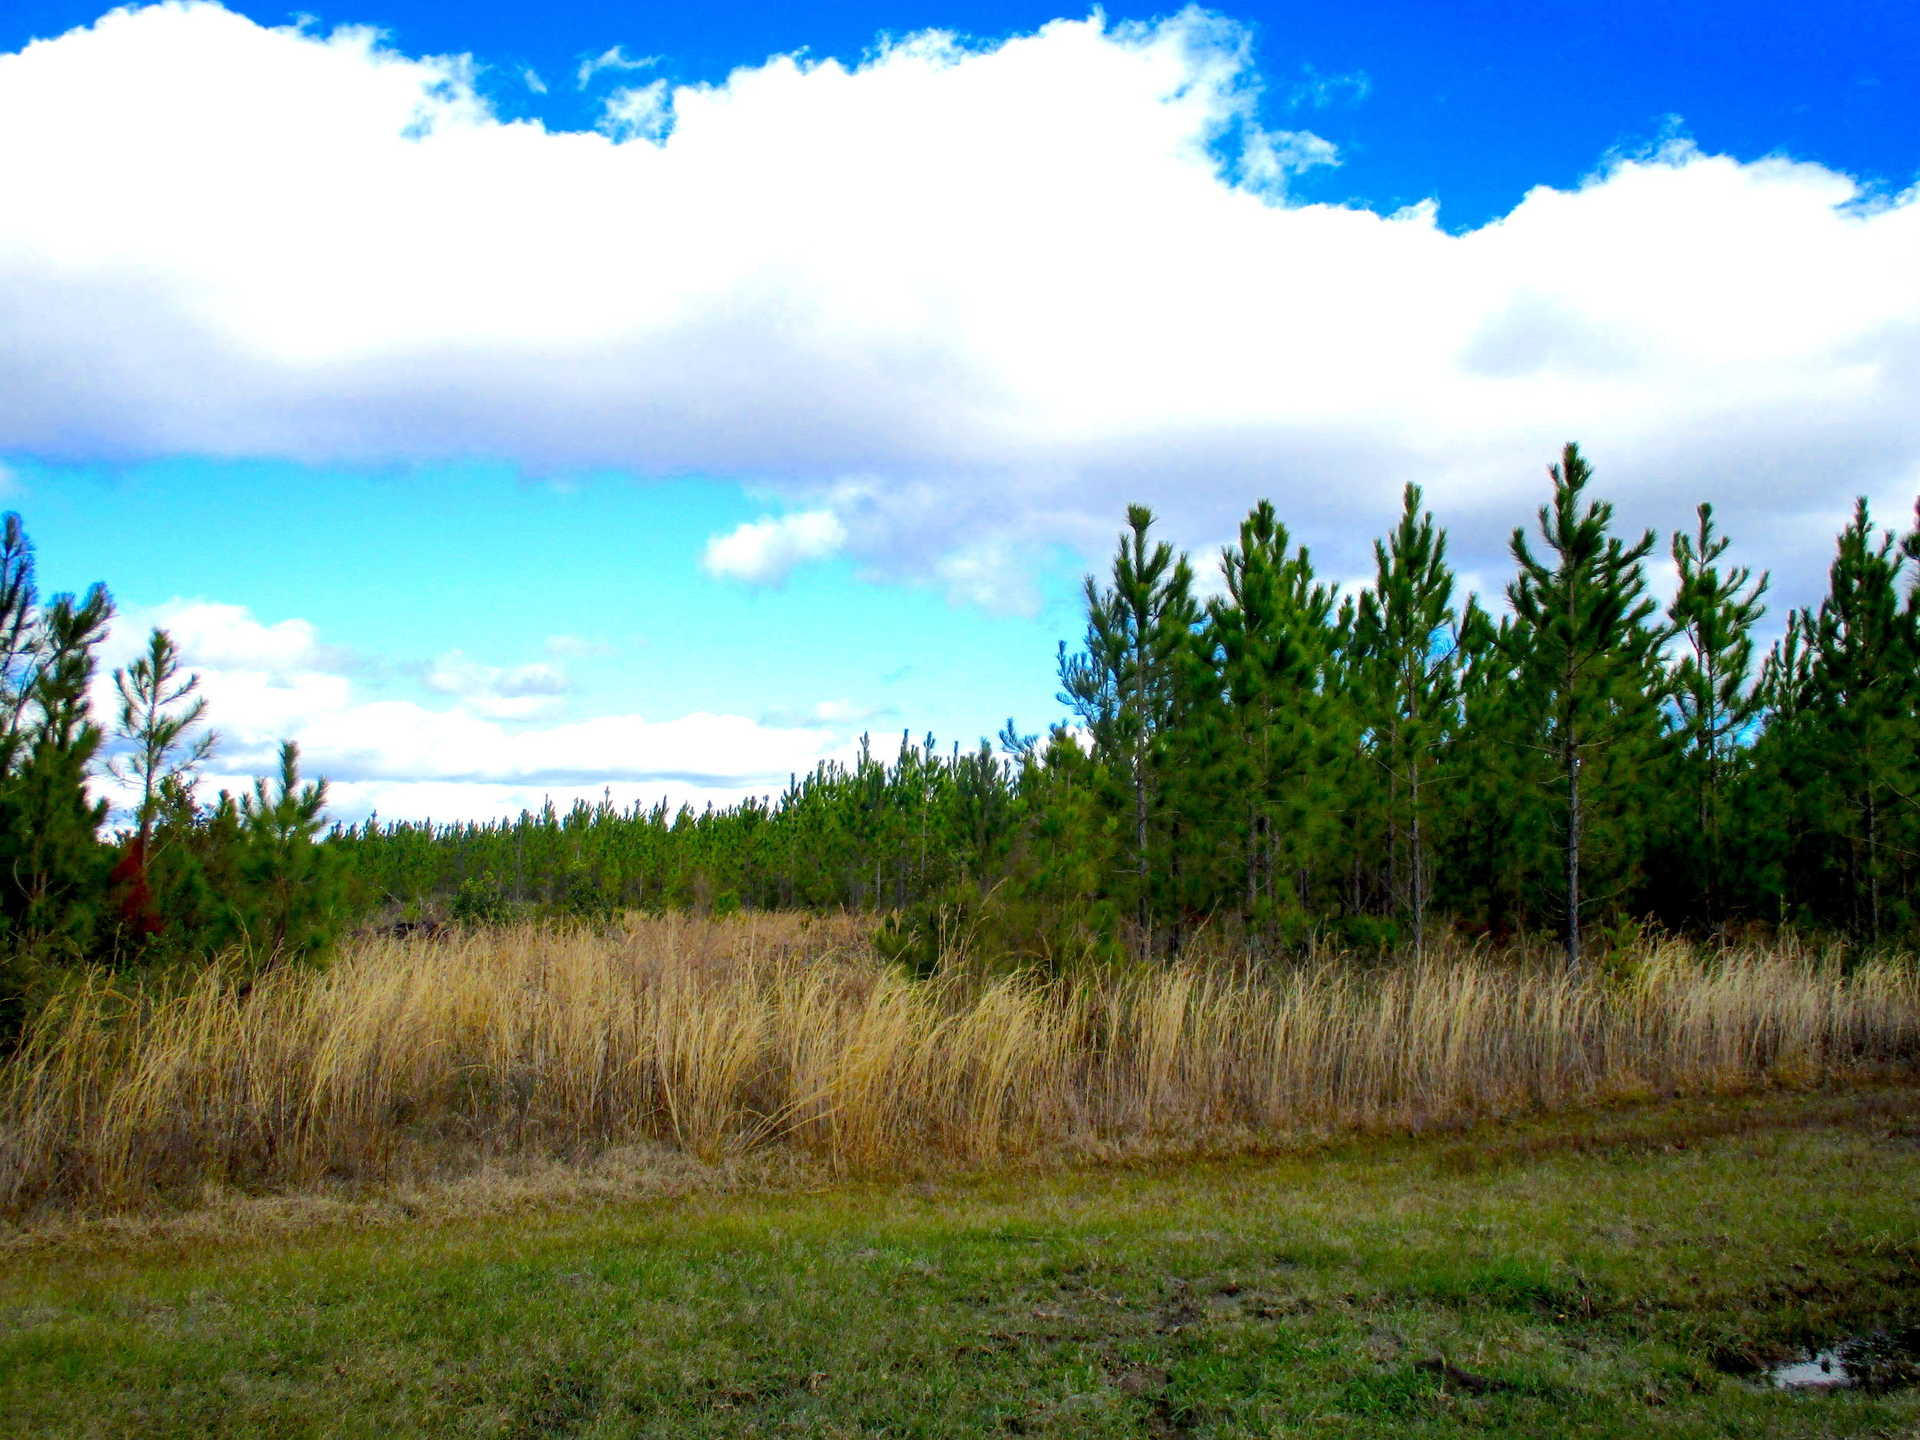 Timber. Wildlife. Possibilities on Perch Creek Trail image